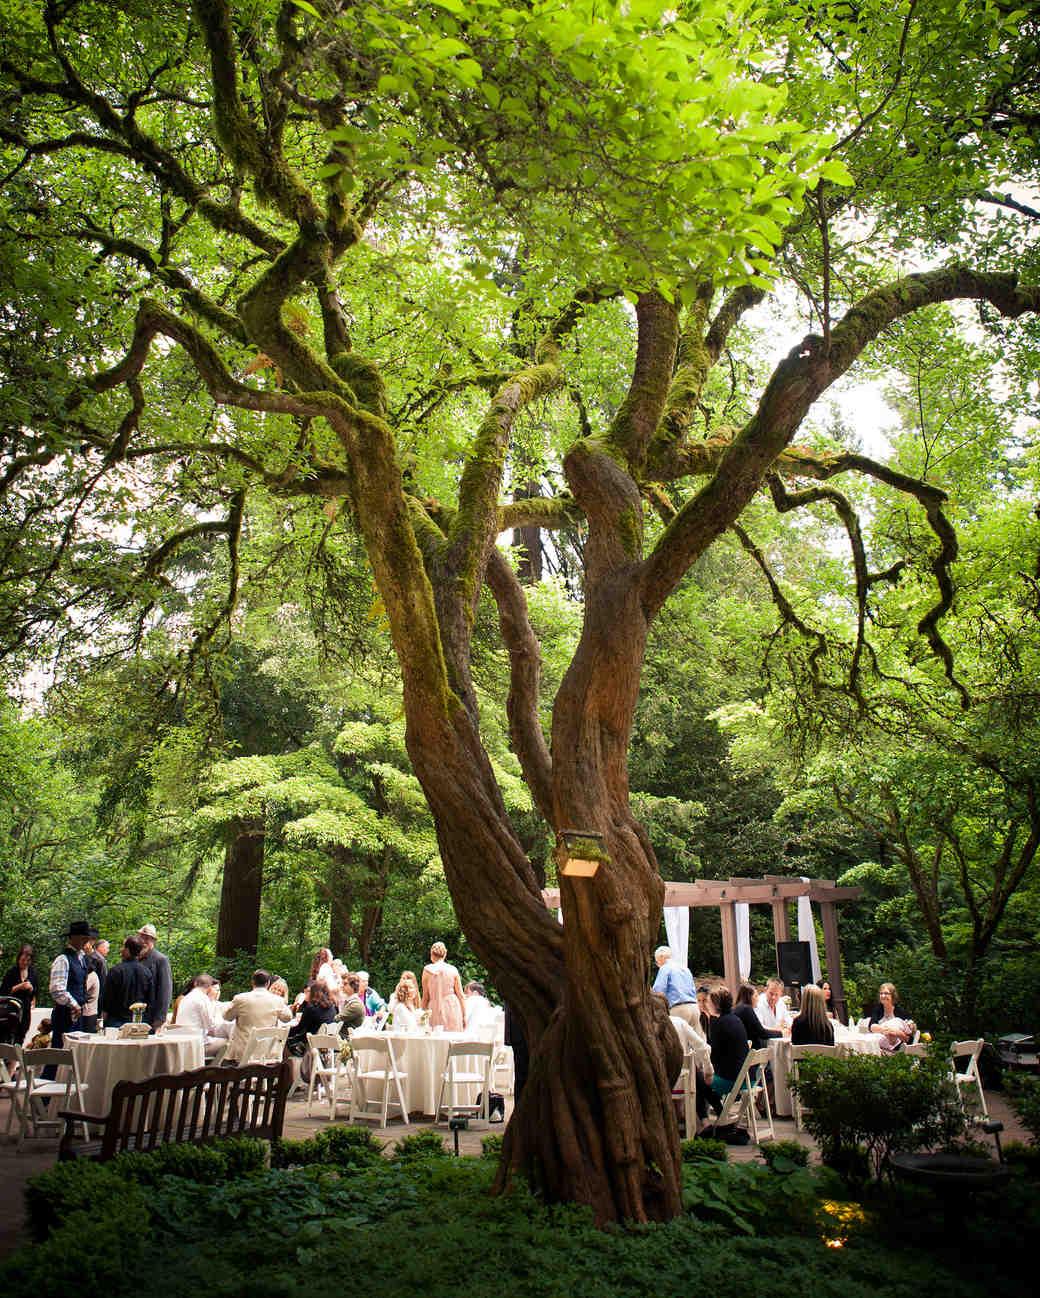 Oregon wedding venues outdoor los angeles Beautiful wedding style